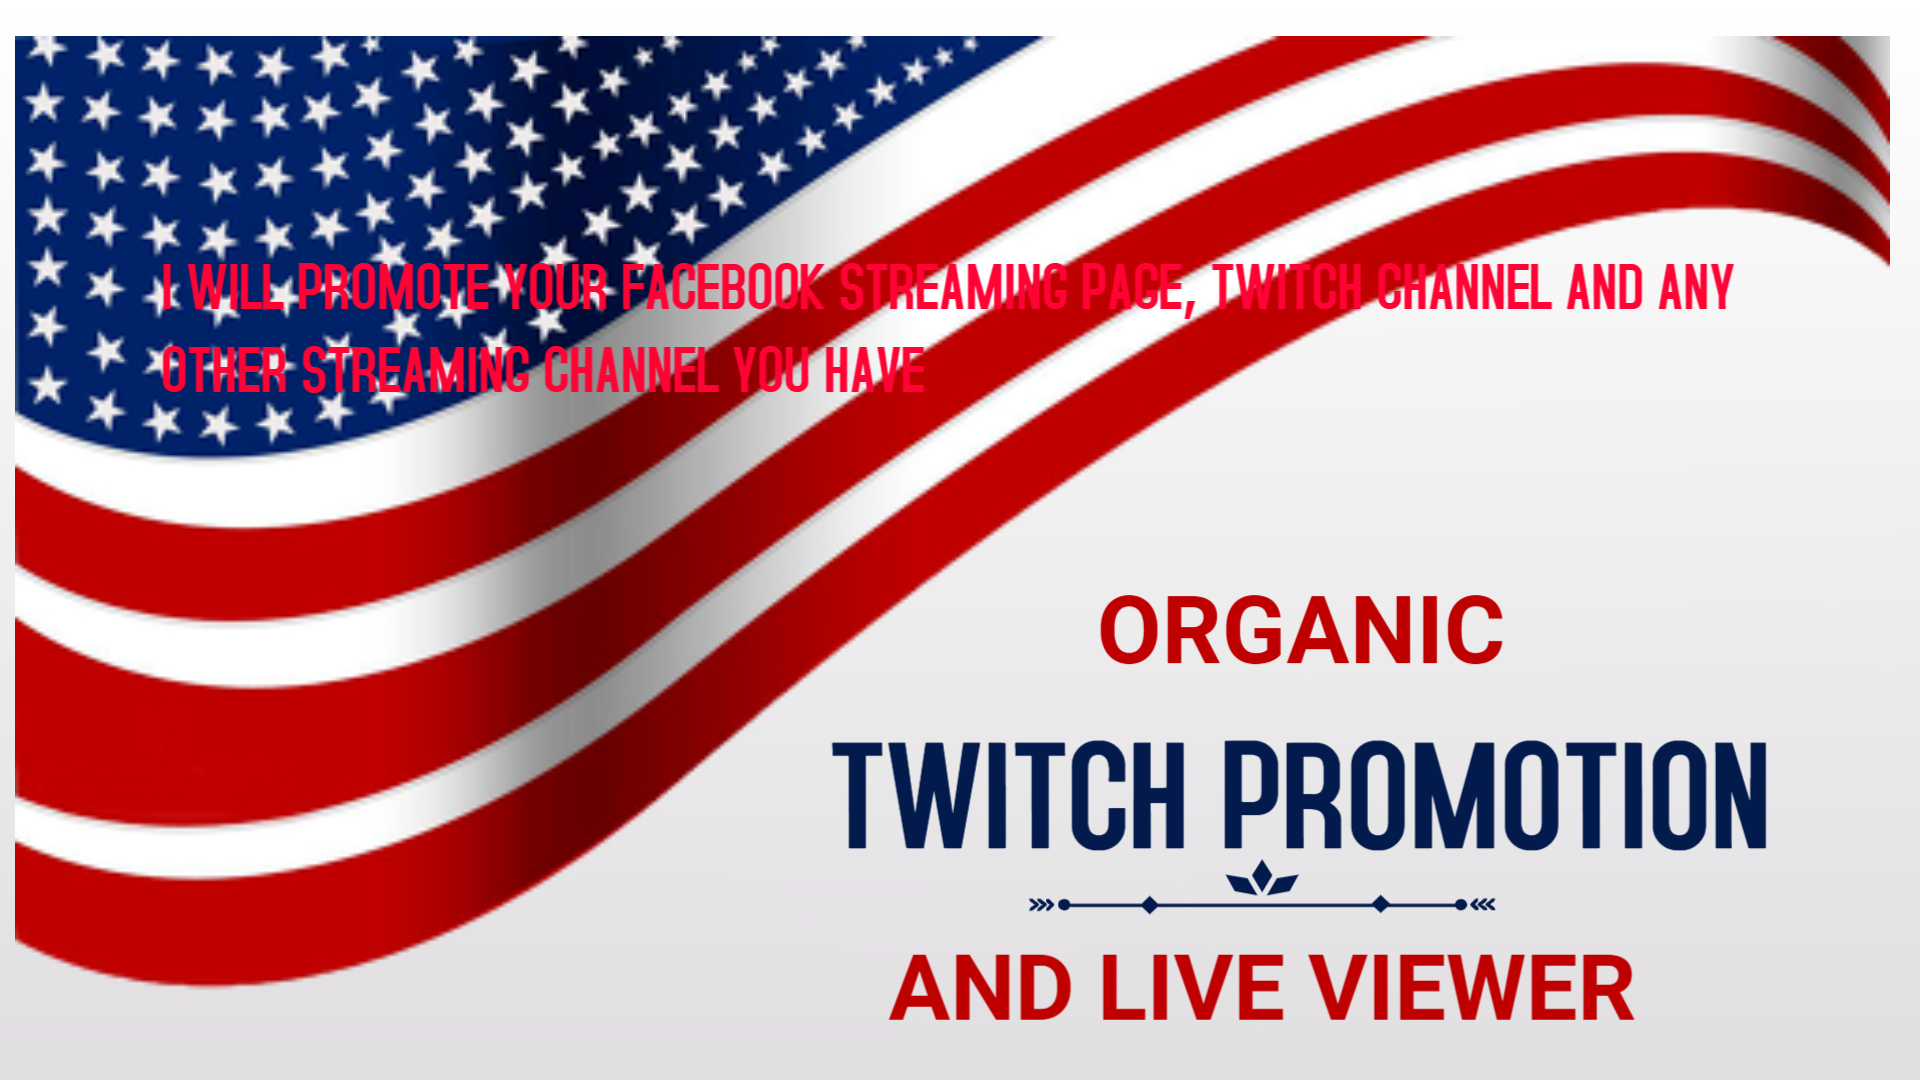 I will promote your facebook gaming page, twitch channel to over 20m, FiverrBox